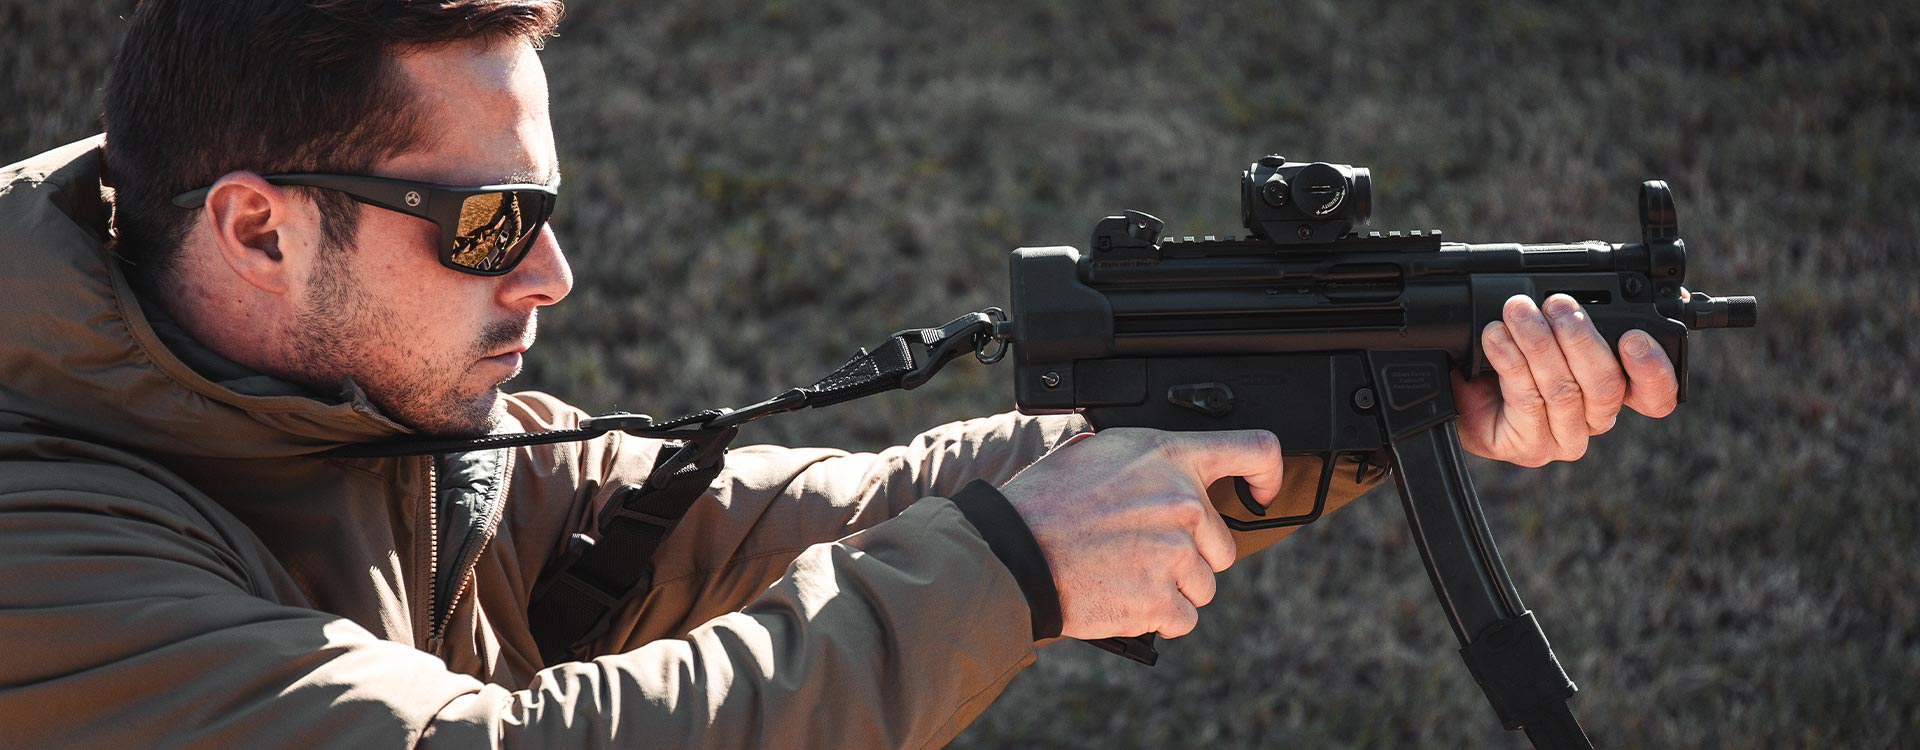 SL Hand Guard MP5K on a HK pistol with SL Grip Module, ESK, 9mm Magpul, and MS3 Sling being fired by a man with Magpul glasses